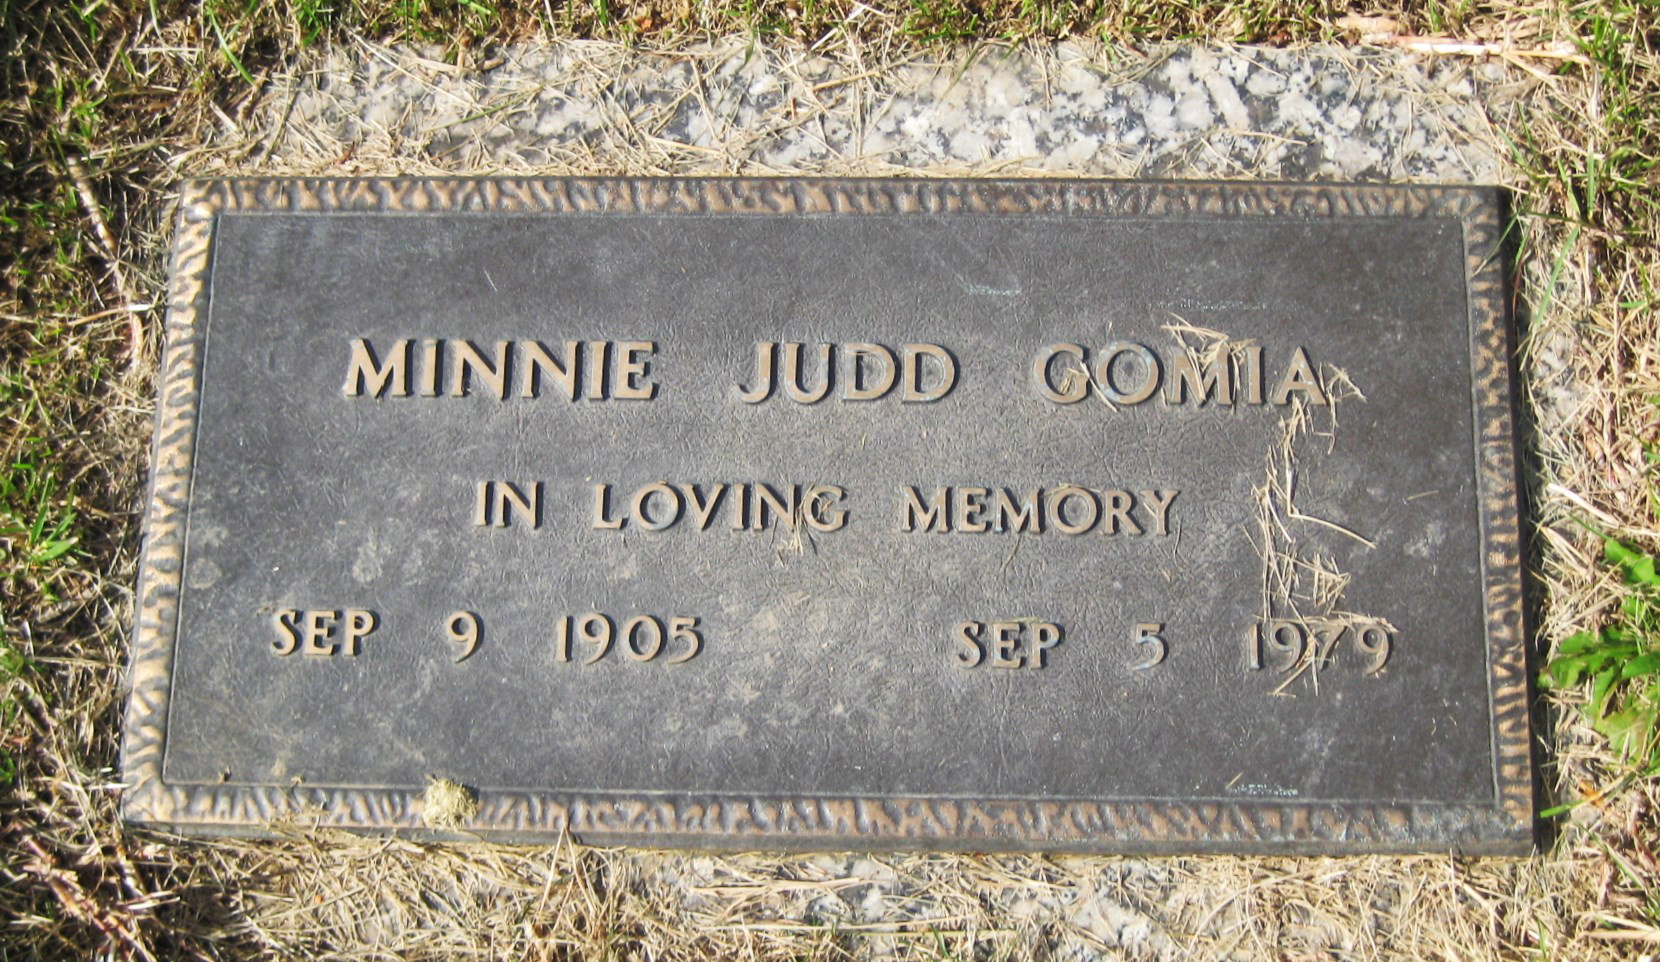 Minnie Judd